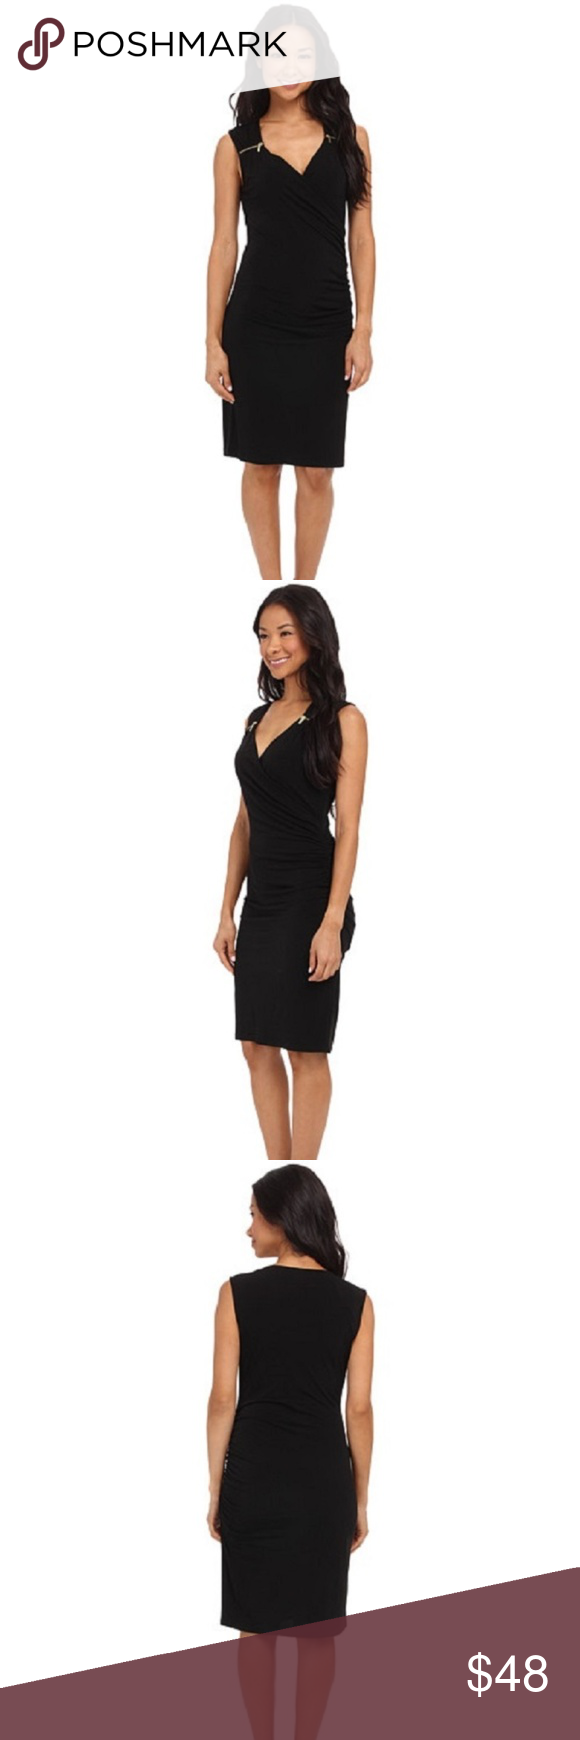 MICHAEL KORS BLACK Sweetheart Neck Sheath Dress MICHAEL Michael KORS BLACK Sweetheart Neck Sheath Dress w/ Zippers on Shoulders ( SIZE - X-SMALL ) RETAILS FOR $120.00 + TAX  Turn heads on any occasion with this stunning dress! It fits to your body and features  flattering ruching with edgy Decorative zipper accents on the shoulders. Side shirring at left creates a ruched look...Straight Hemline   Color: BLACK Shell: Polyester/Elastane Pullover Machine Wash, Tumble Dry  Approx. Measurements…